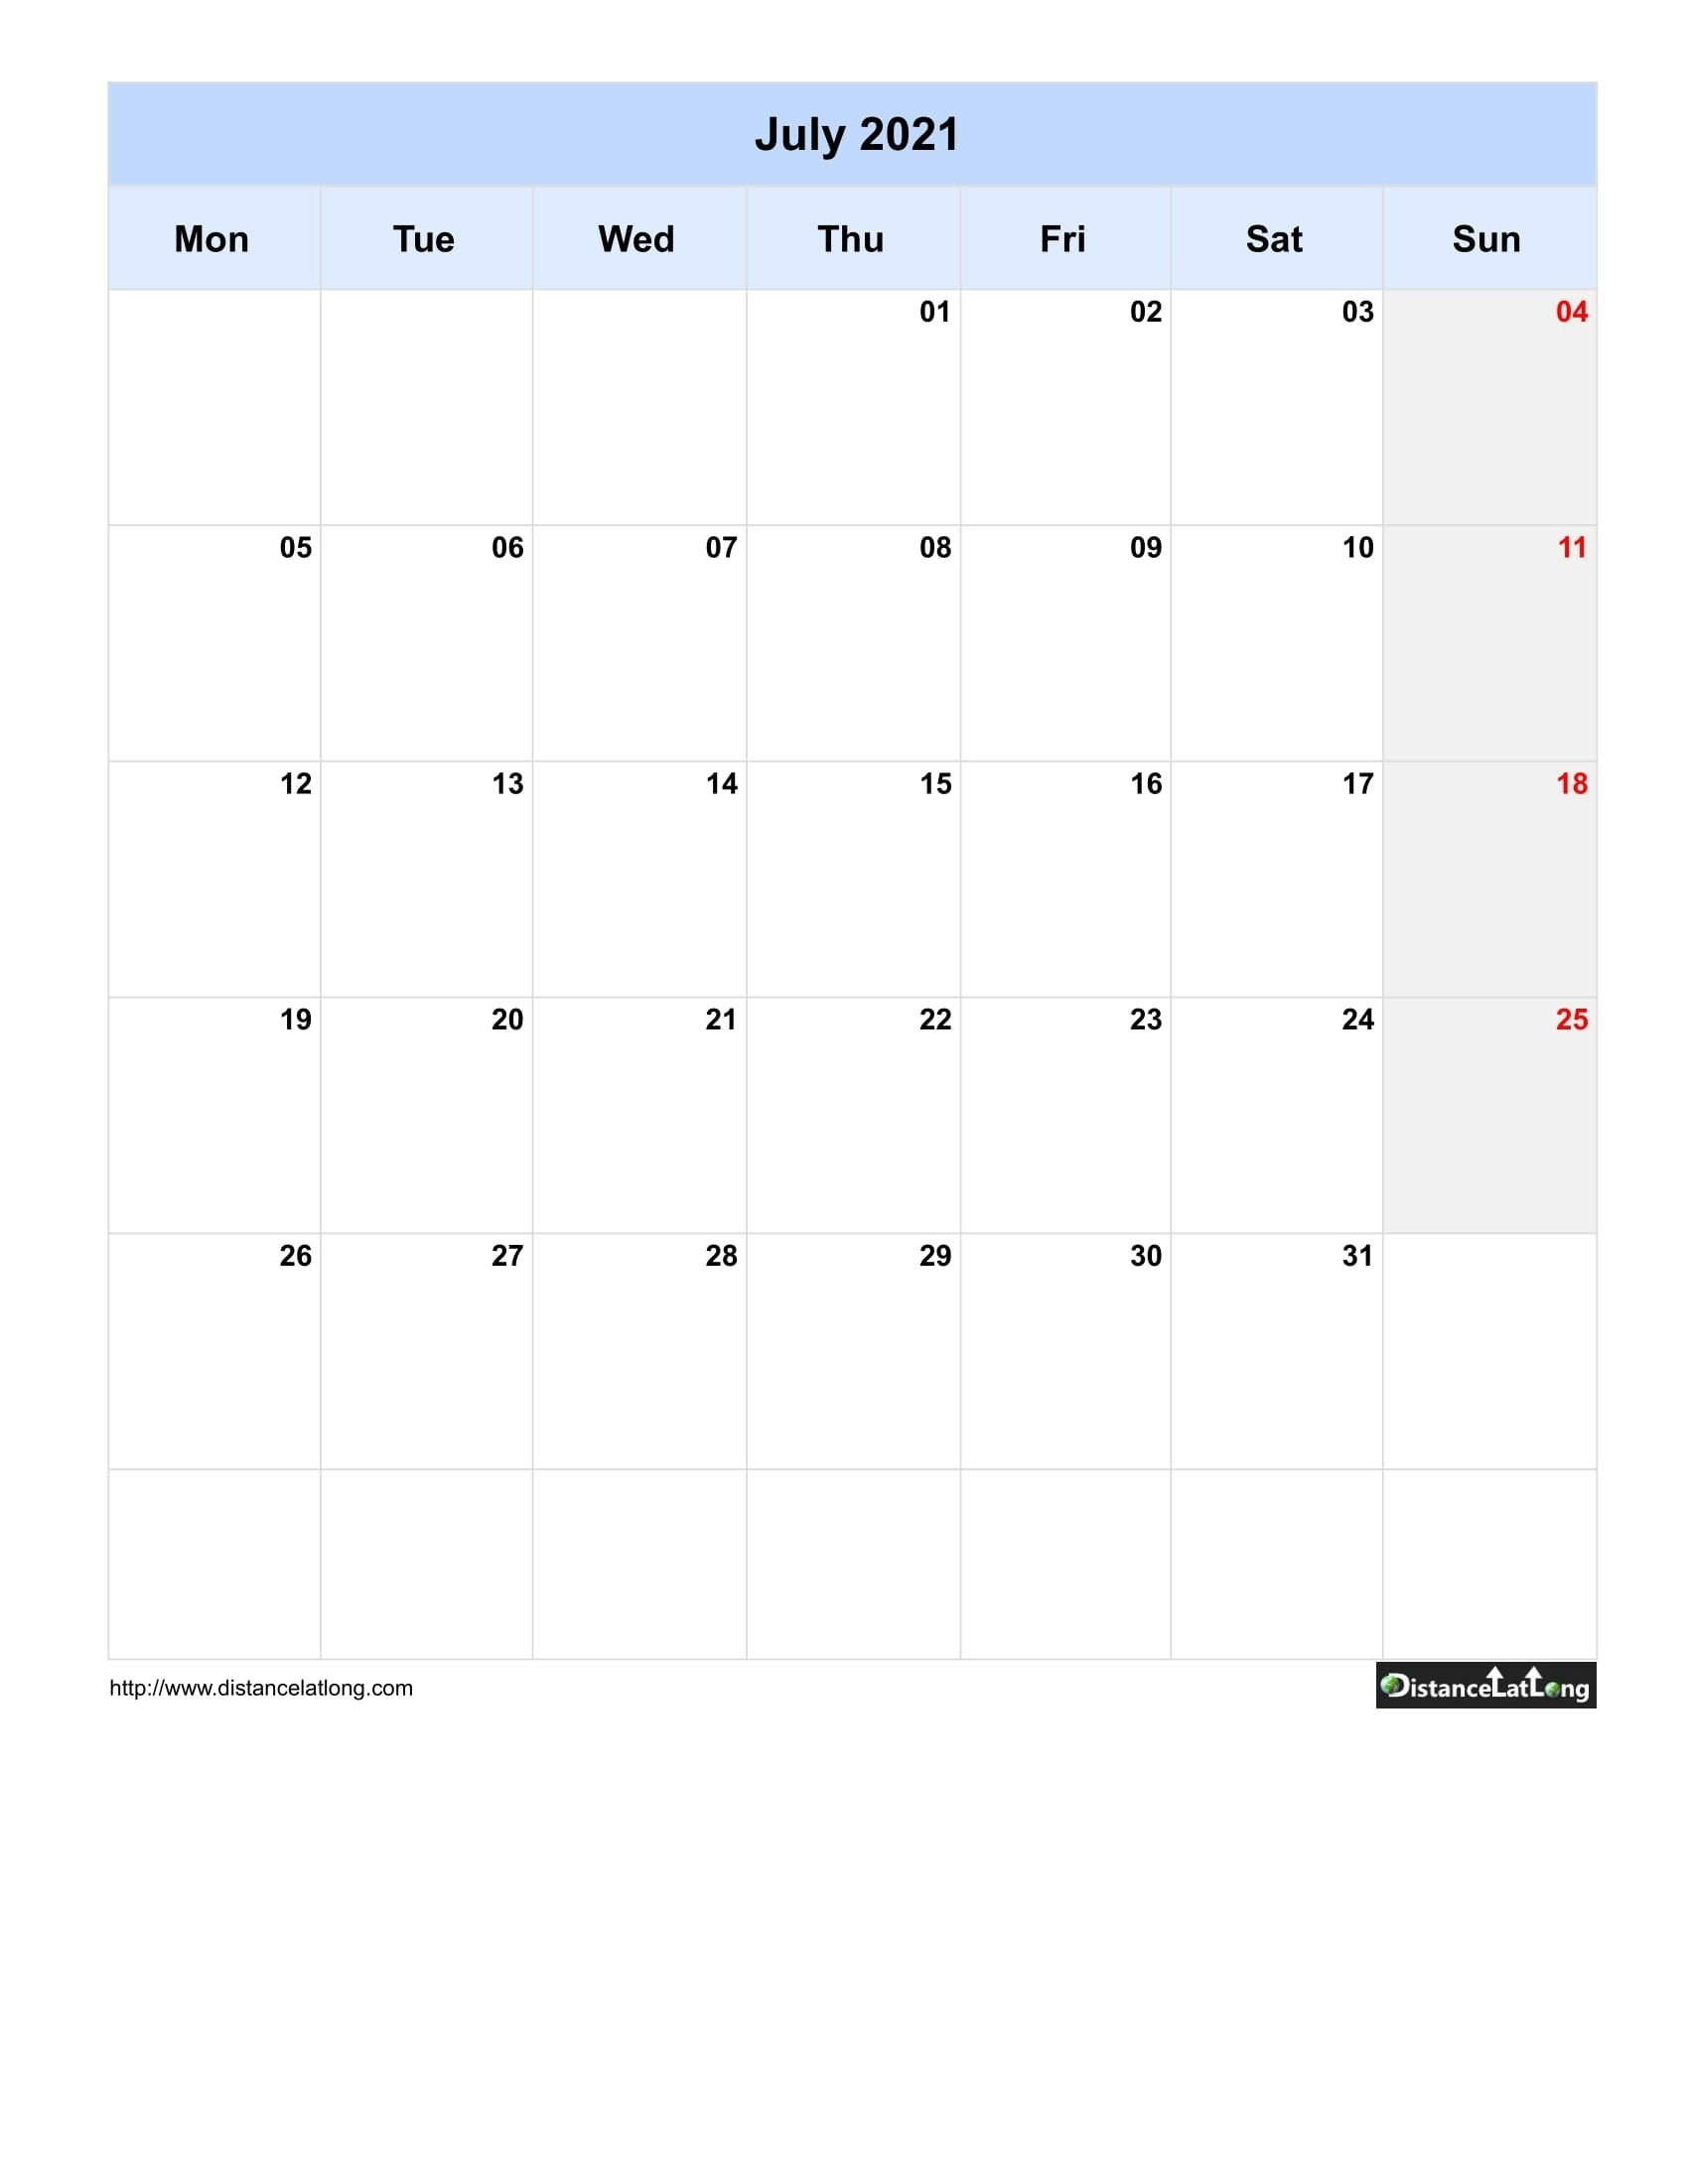 Free Printable Calendars 2021 Blanks Word - Example Calendar Printable pertaining to Printable Calendar 2021 With Lines